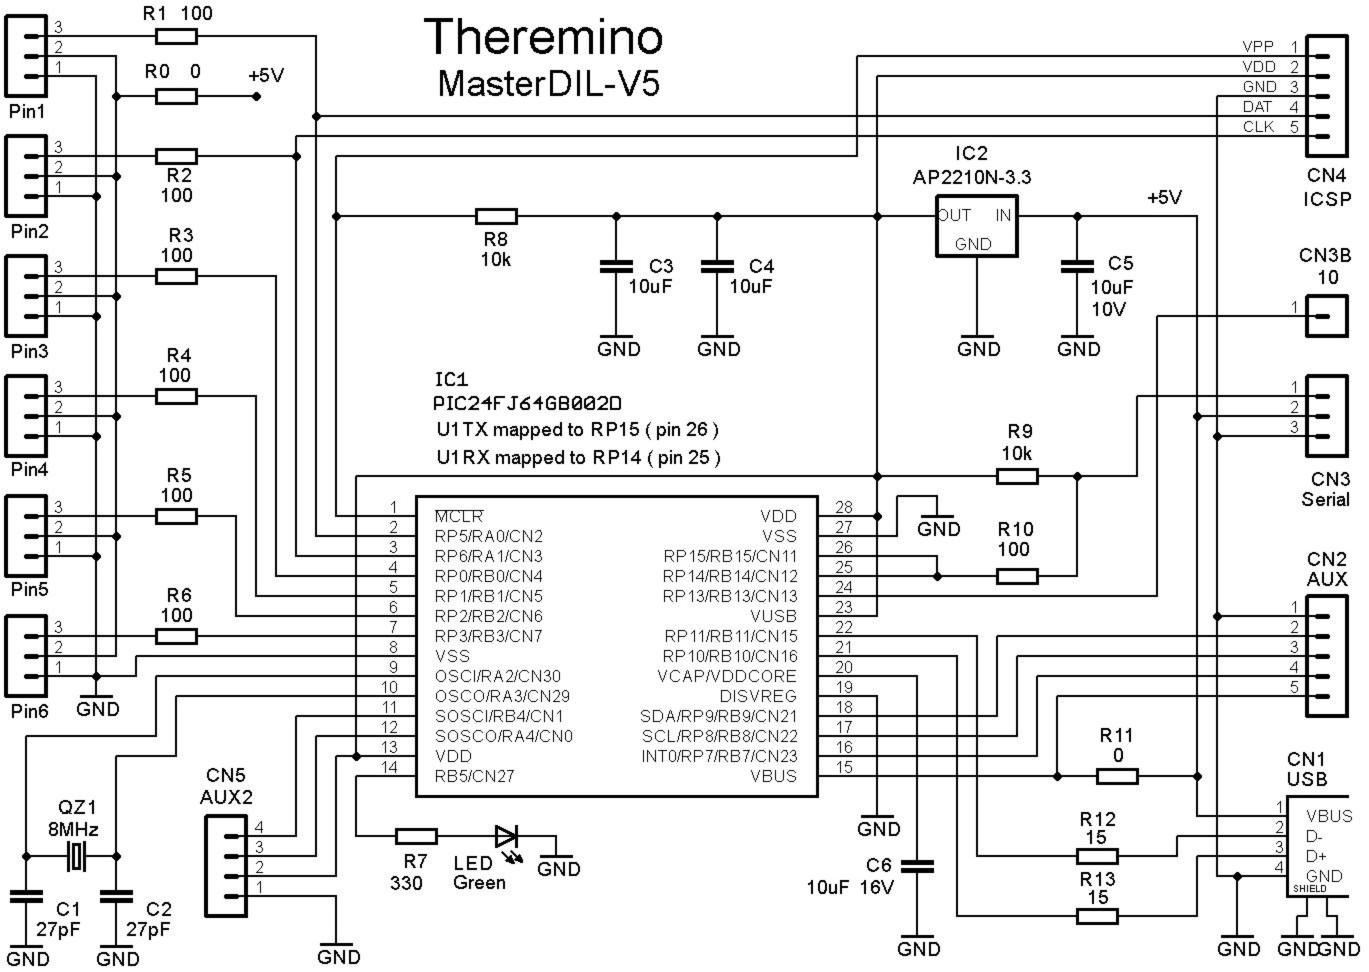 Wiring Diagrams Theremino Audio Technica Master Dil V5 Sch